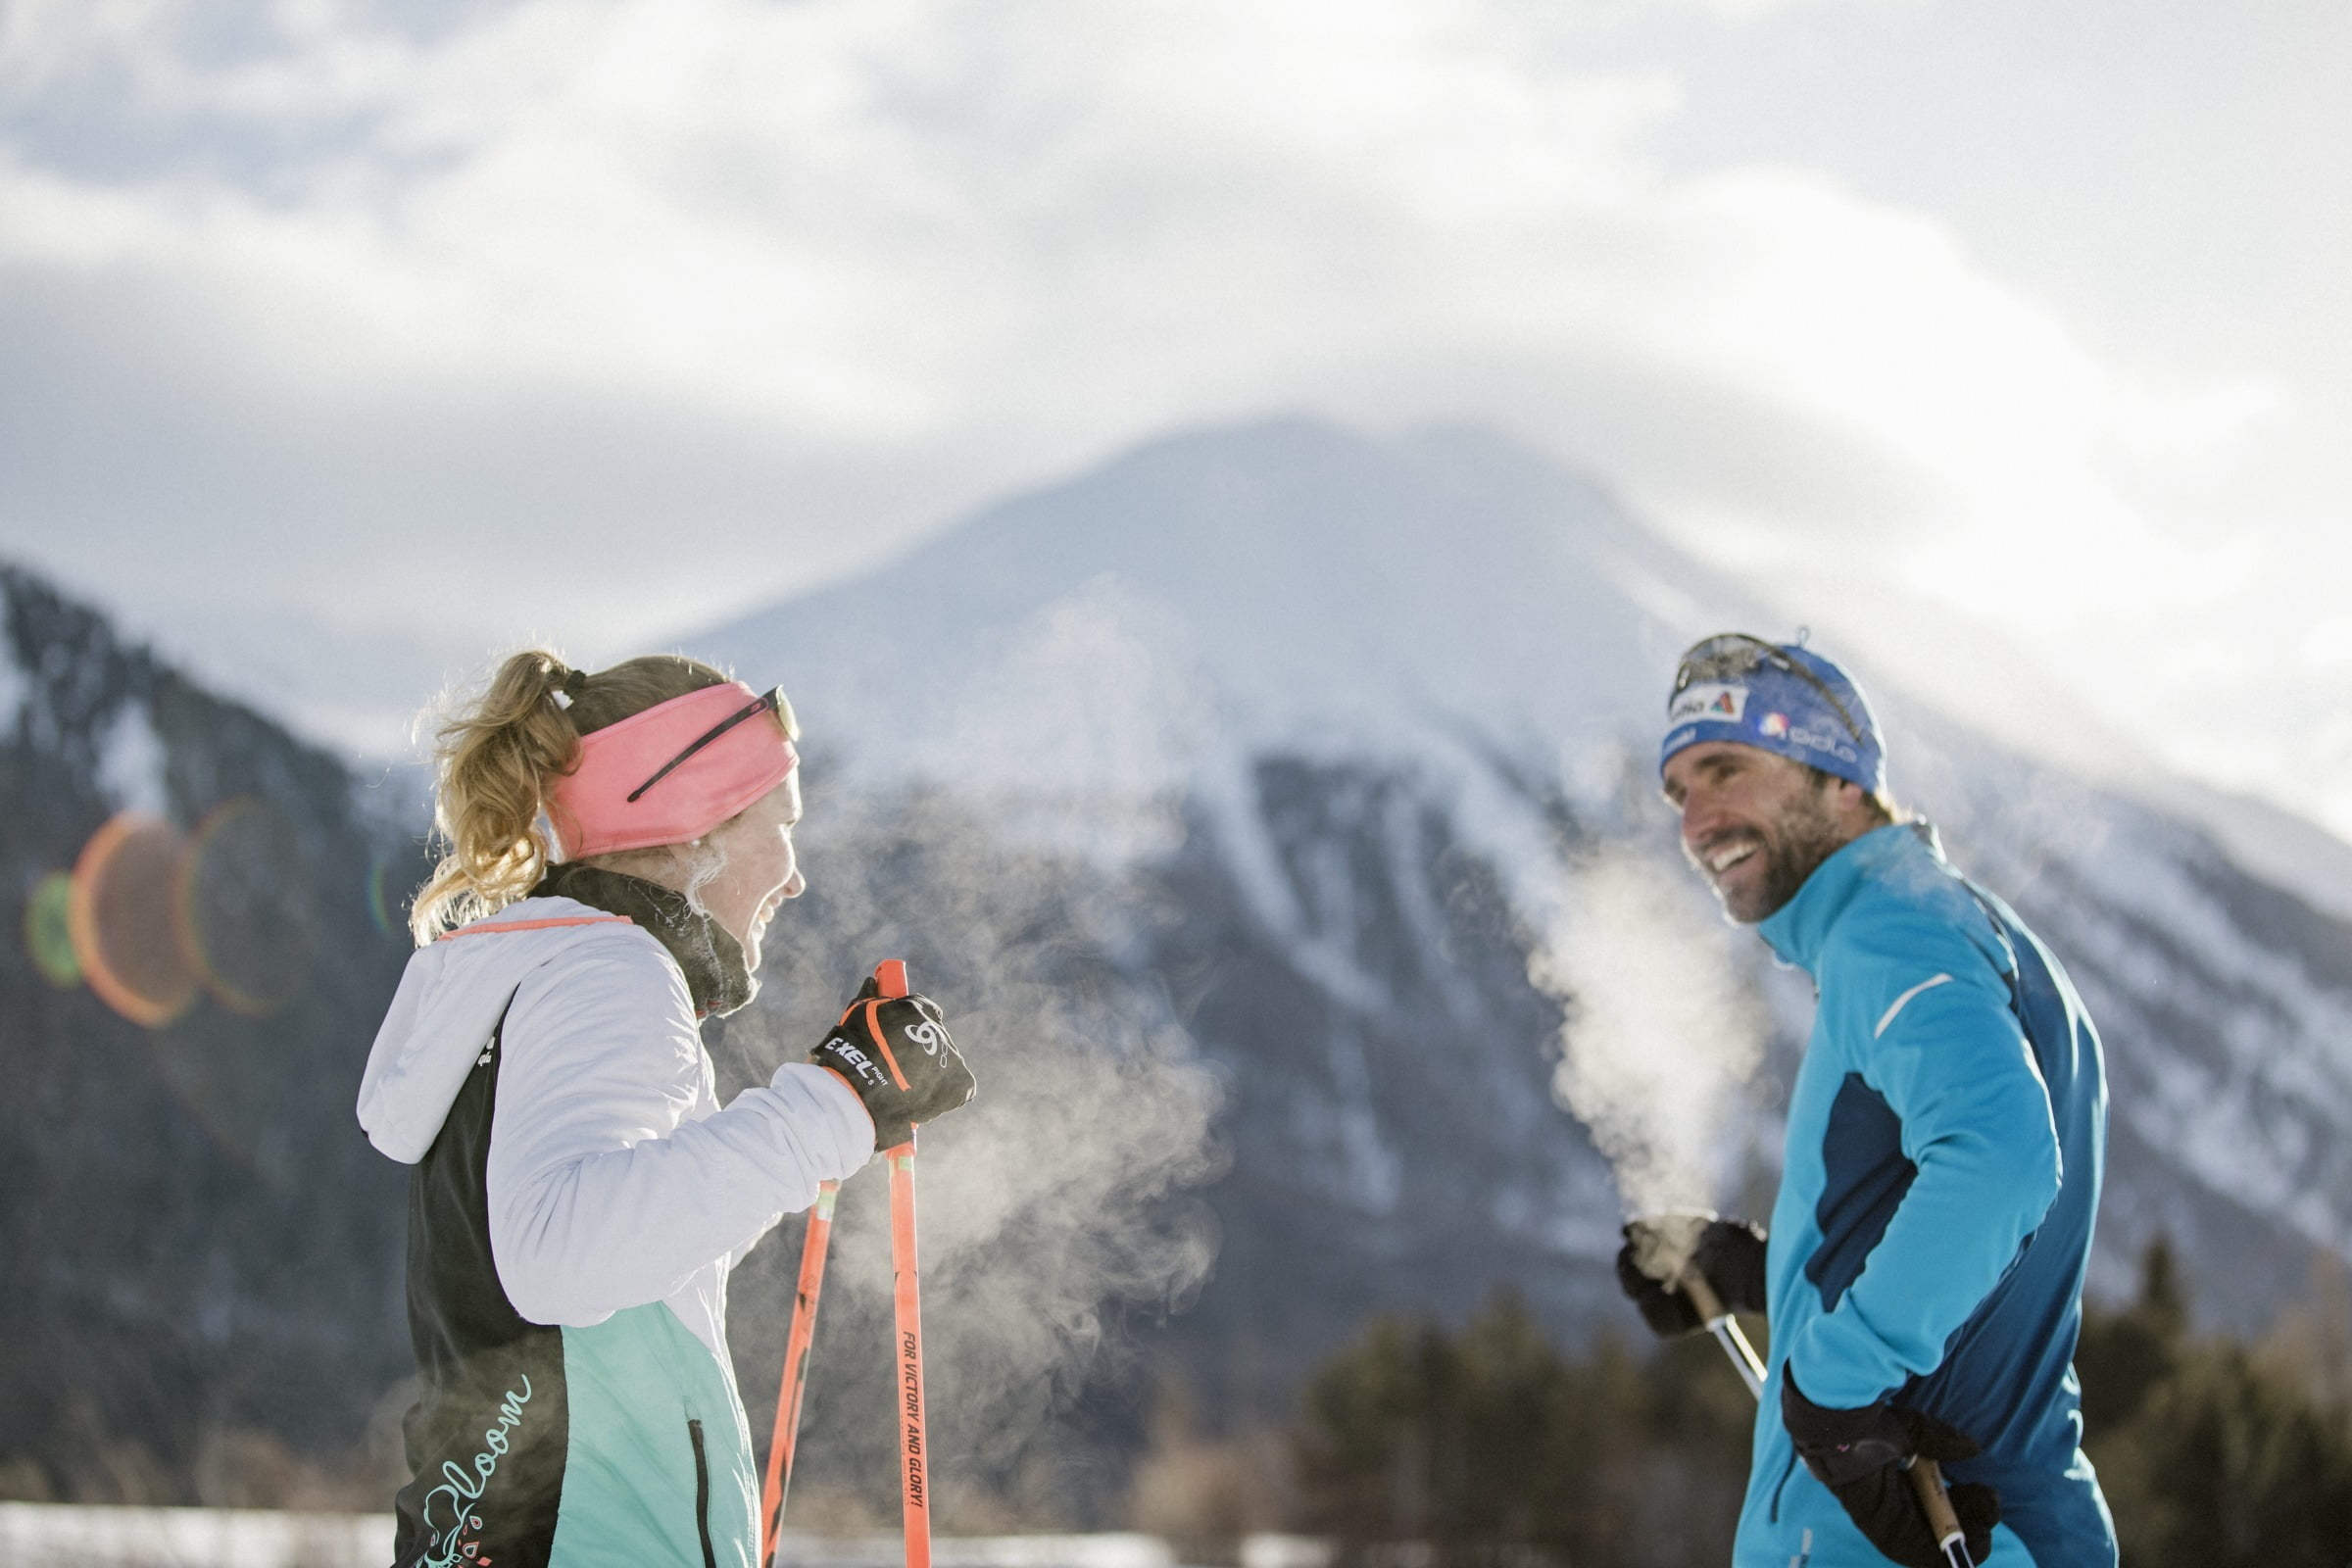 Cross-country skiing – the perfect workout